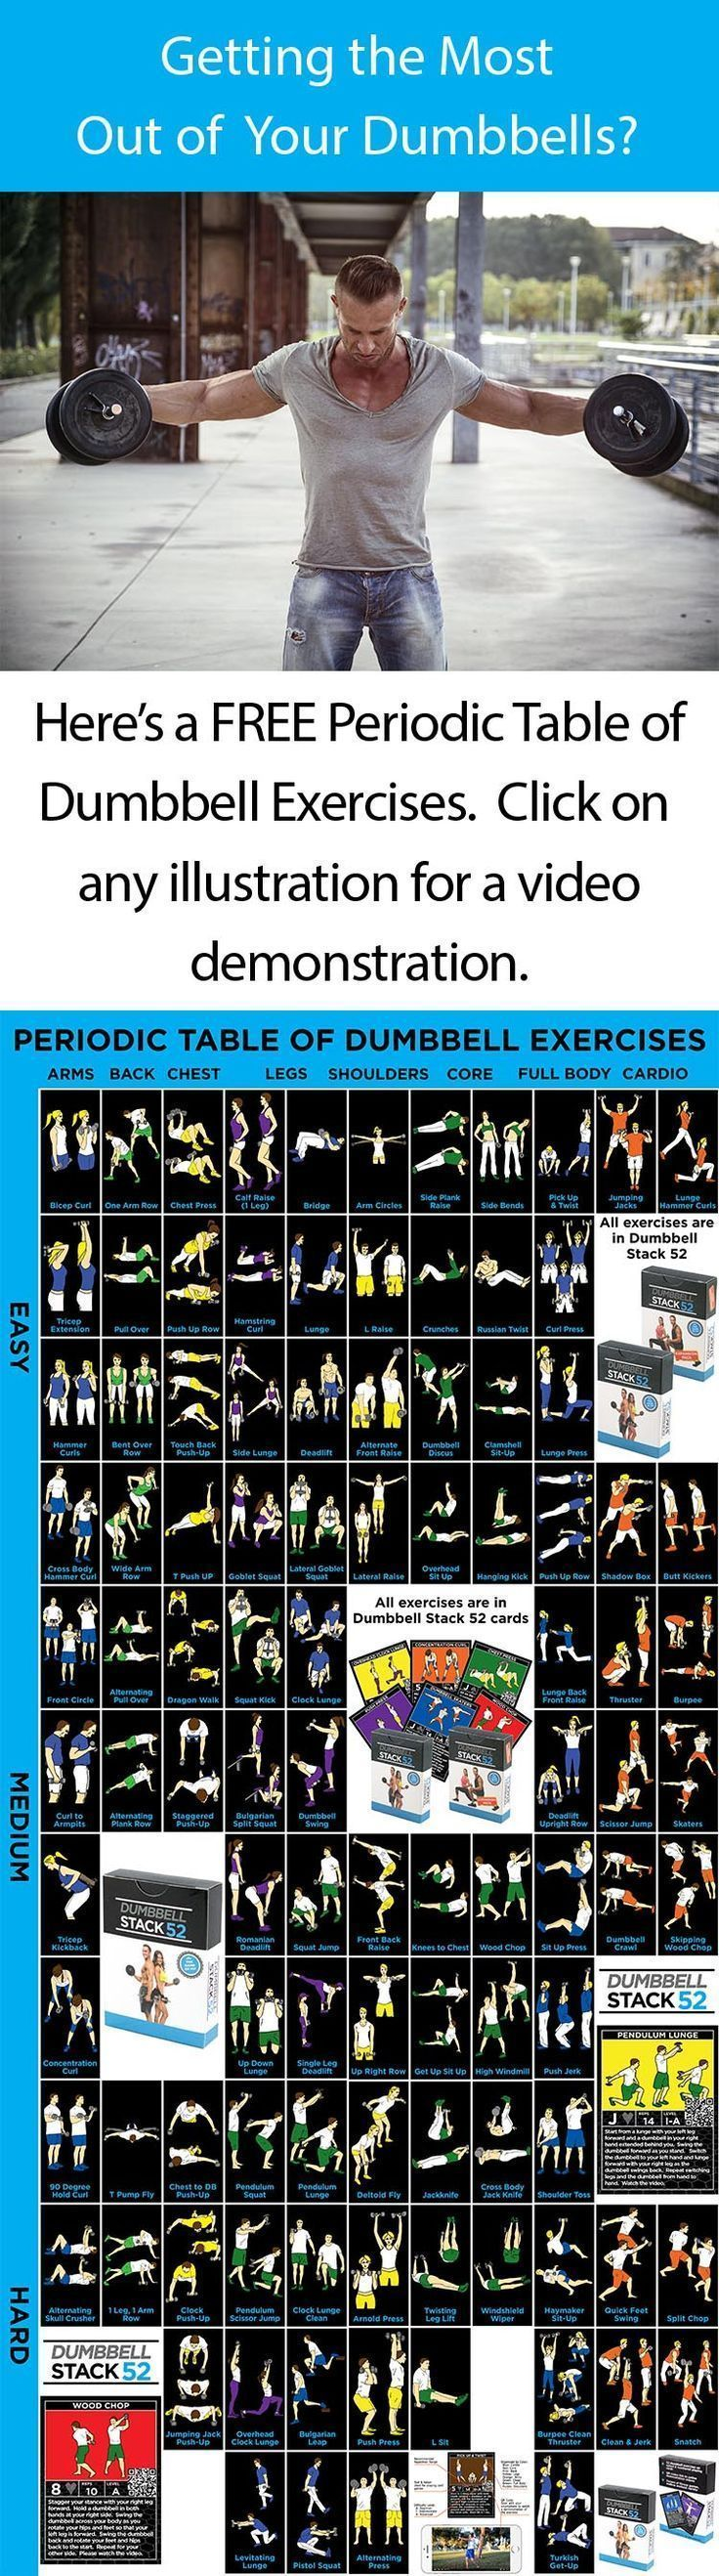 104 different dumbbell exercises organized by muscle group and difficulty. Click on any illustration for a video demonstration of the exercise. #dumbbellexercises